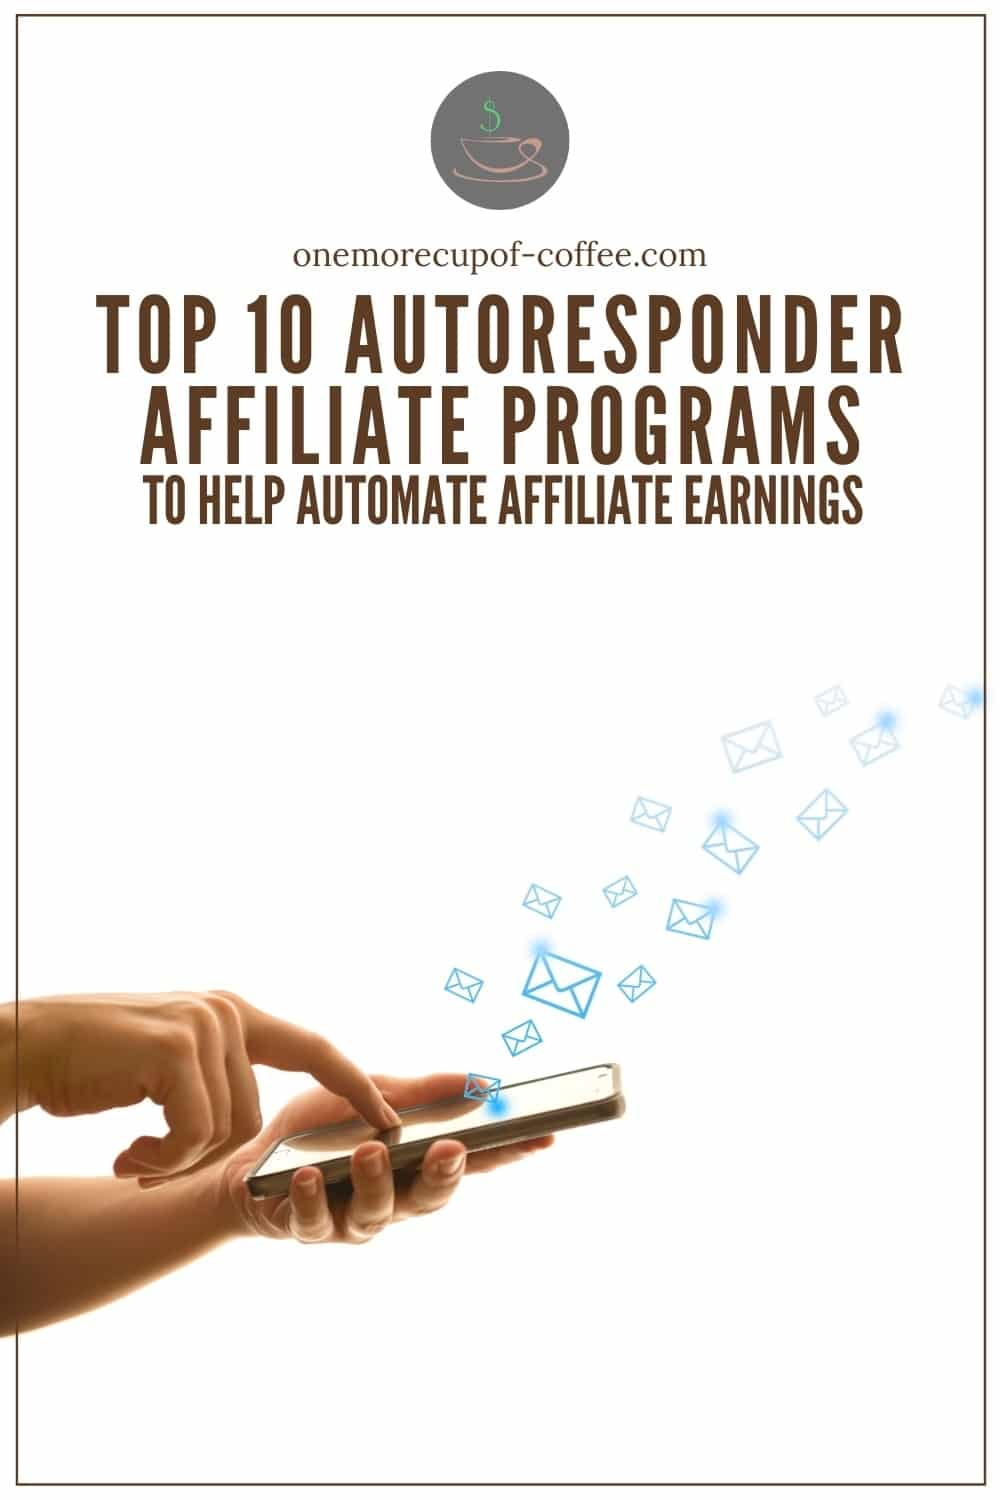 """closeup image of two hands holding a mobile phone with the mail icon coming out from the phone; with text overlay """"Top 10 Autoresponder Affiliate Programs To Help Automate Affiliate Earnings"""""""